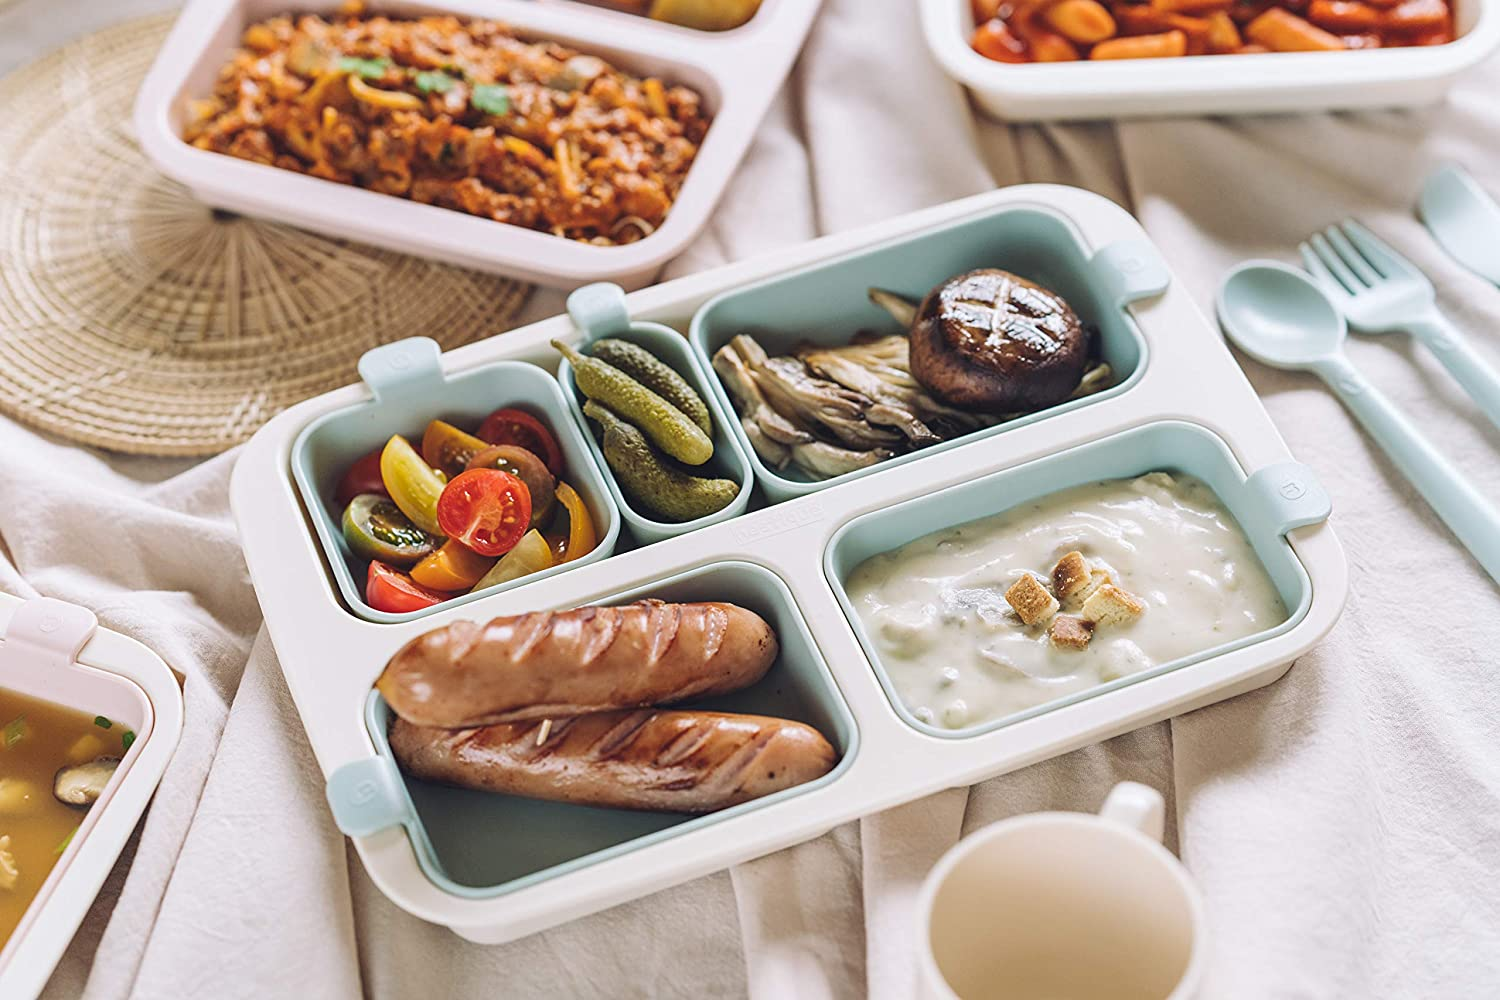 Nestique Baby Plate Food Plate Eco-Friendly Meal Tray (Vanilla Mint)